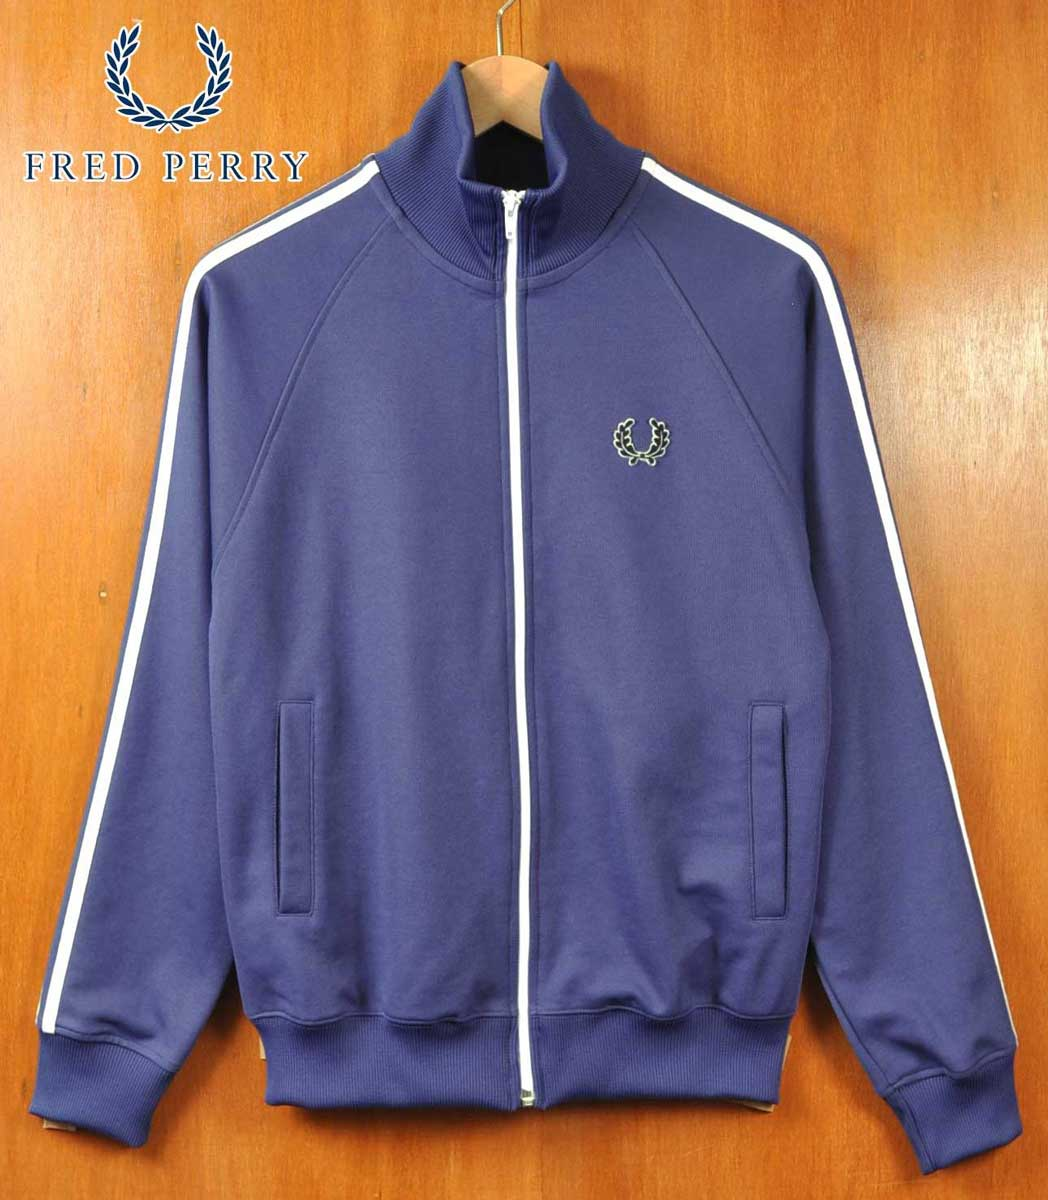 fb96e68b FRED PERRY Fred Perry / jersey / blue gray X white / men XS made ...